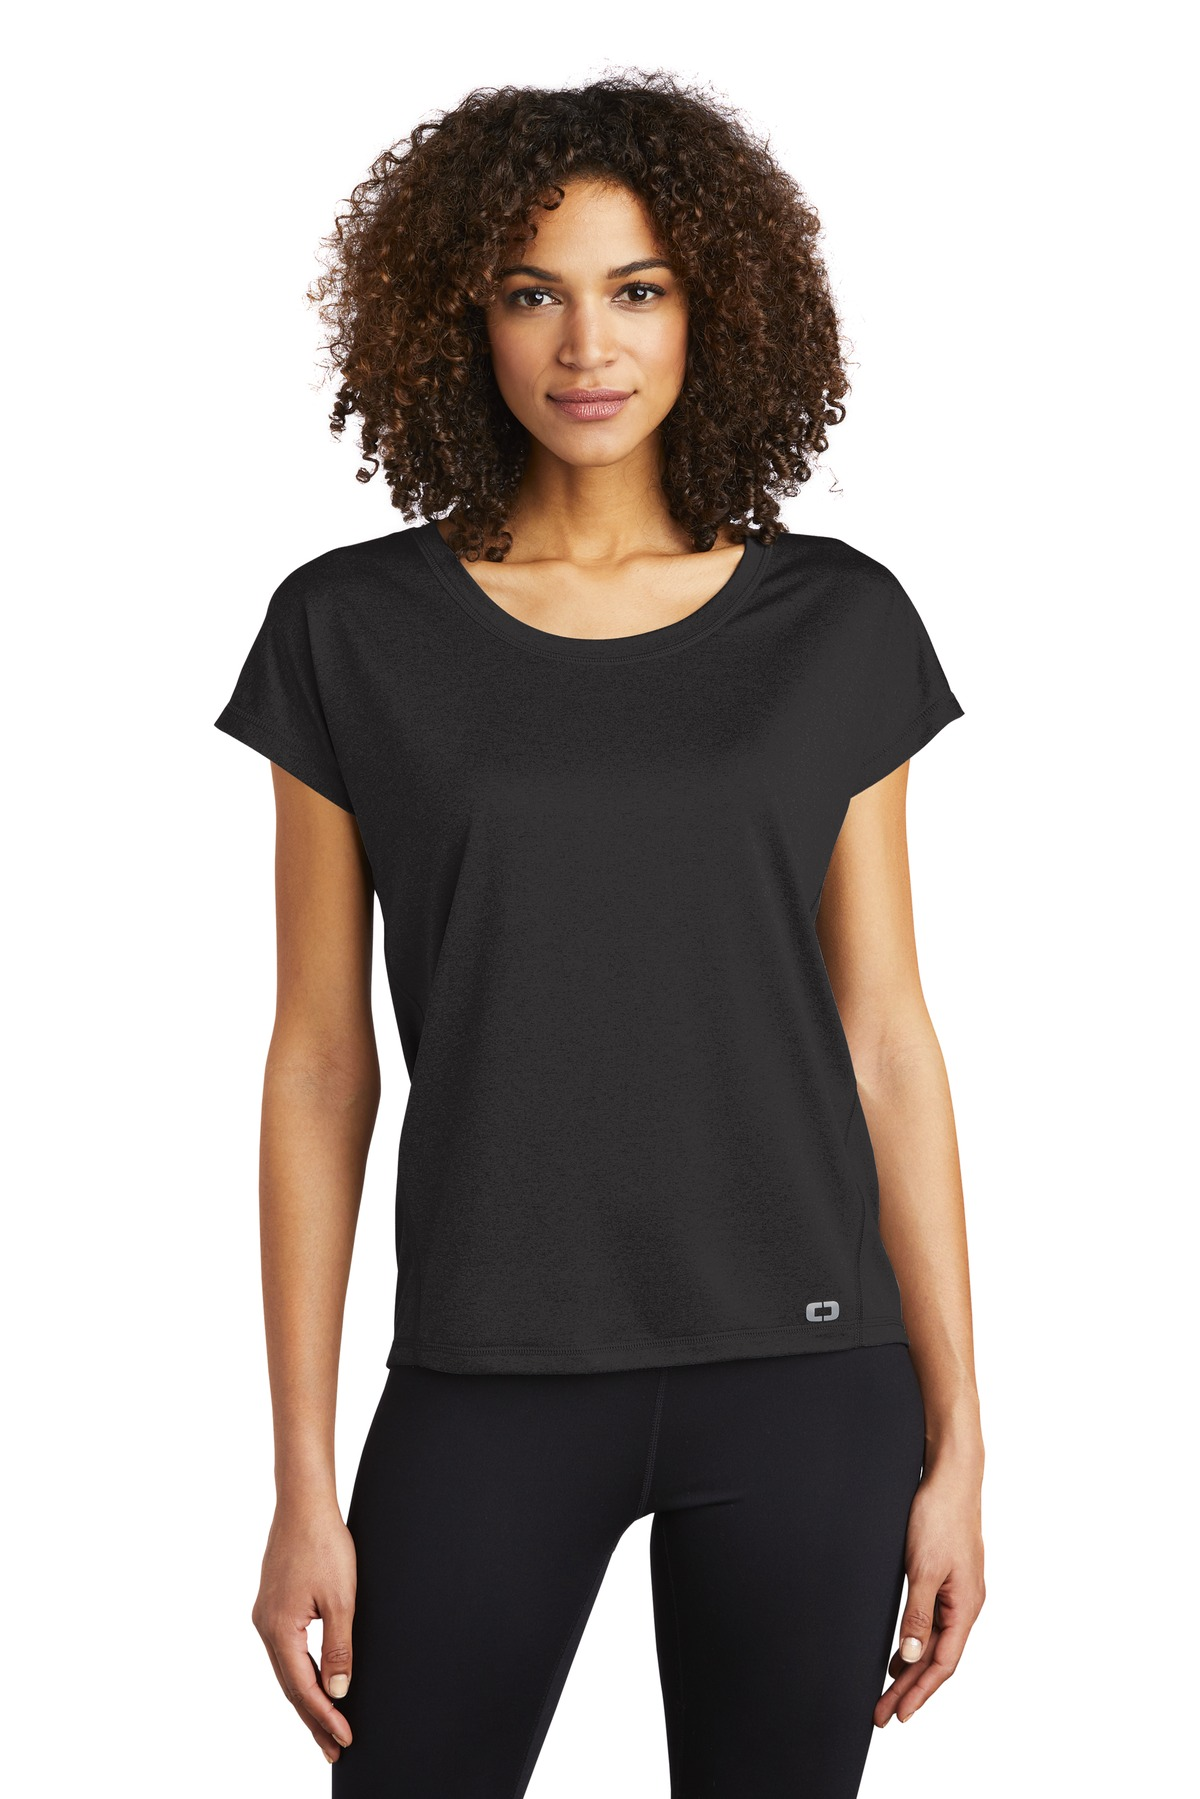 OGIO  ®  ENDURANCE Ladies Pulse Dolman Tee LOE324 - Blacktop